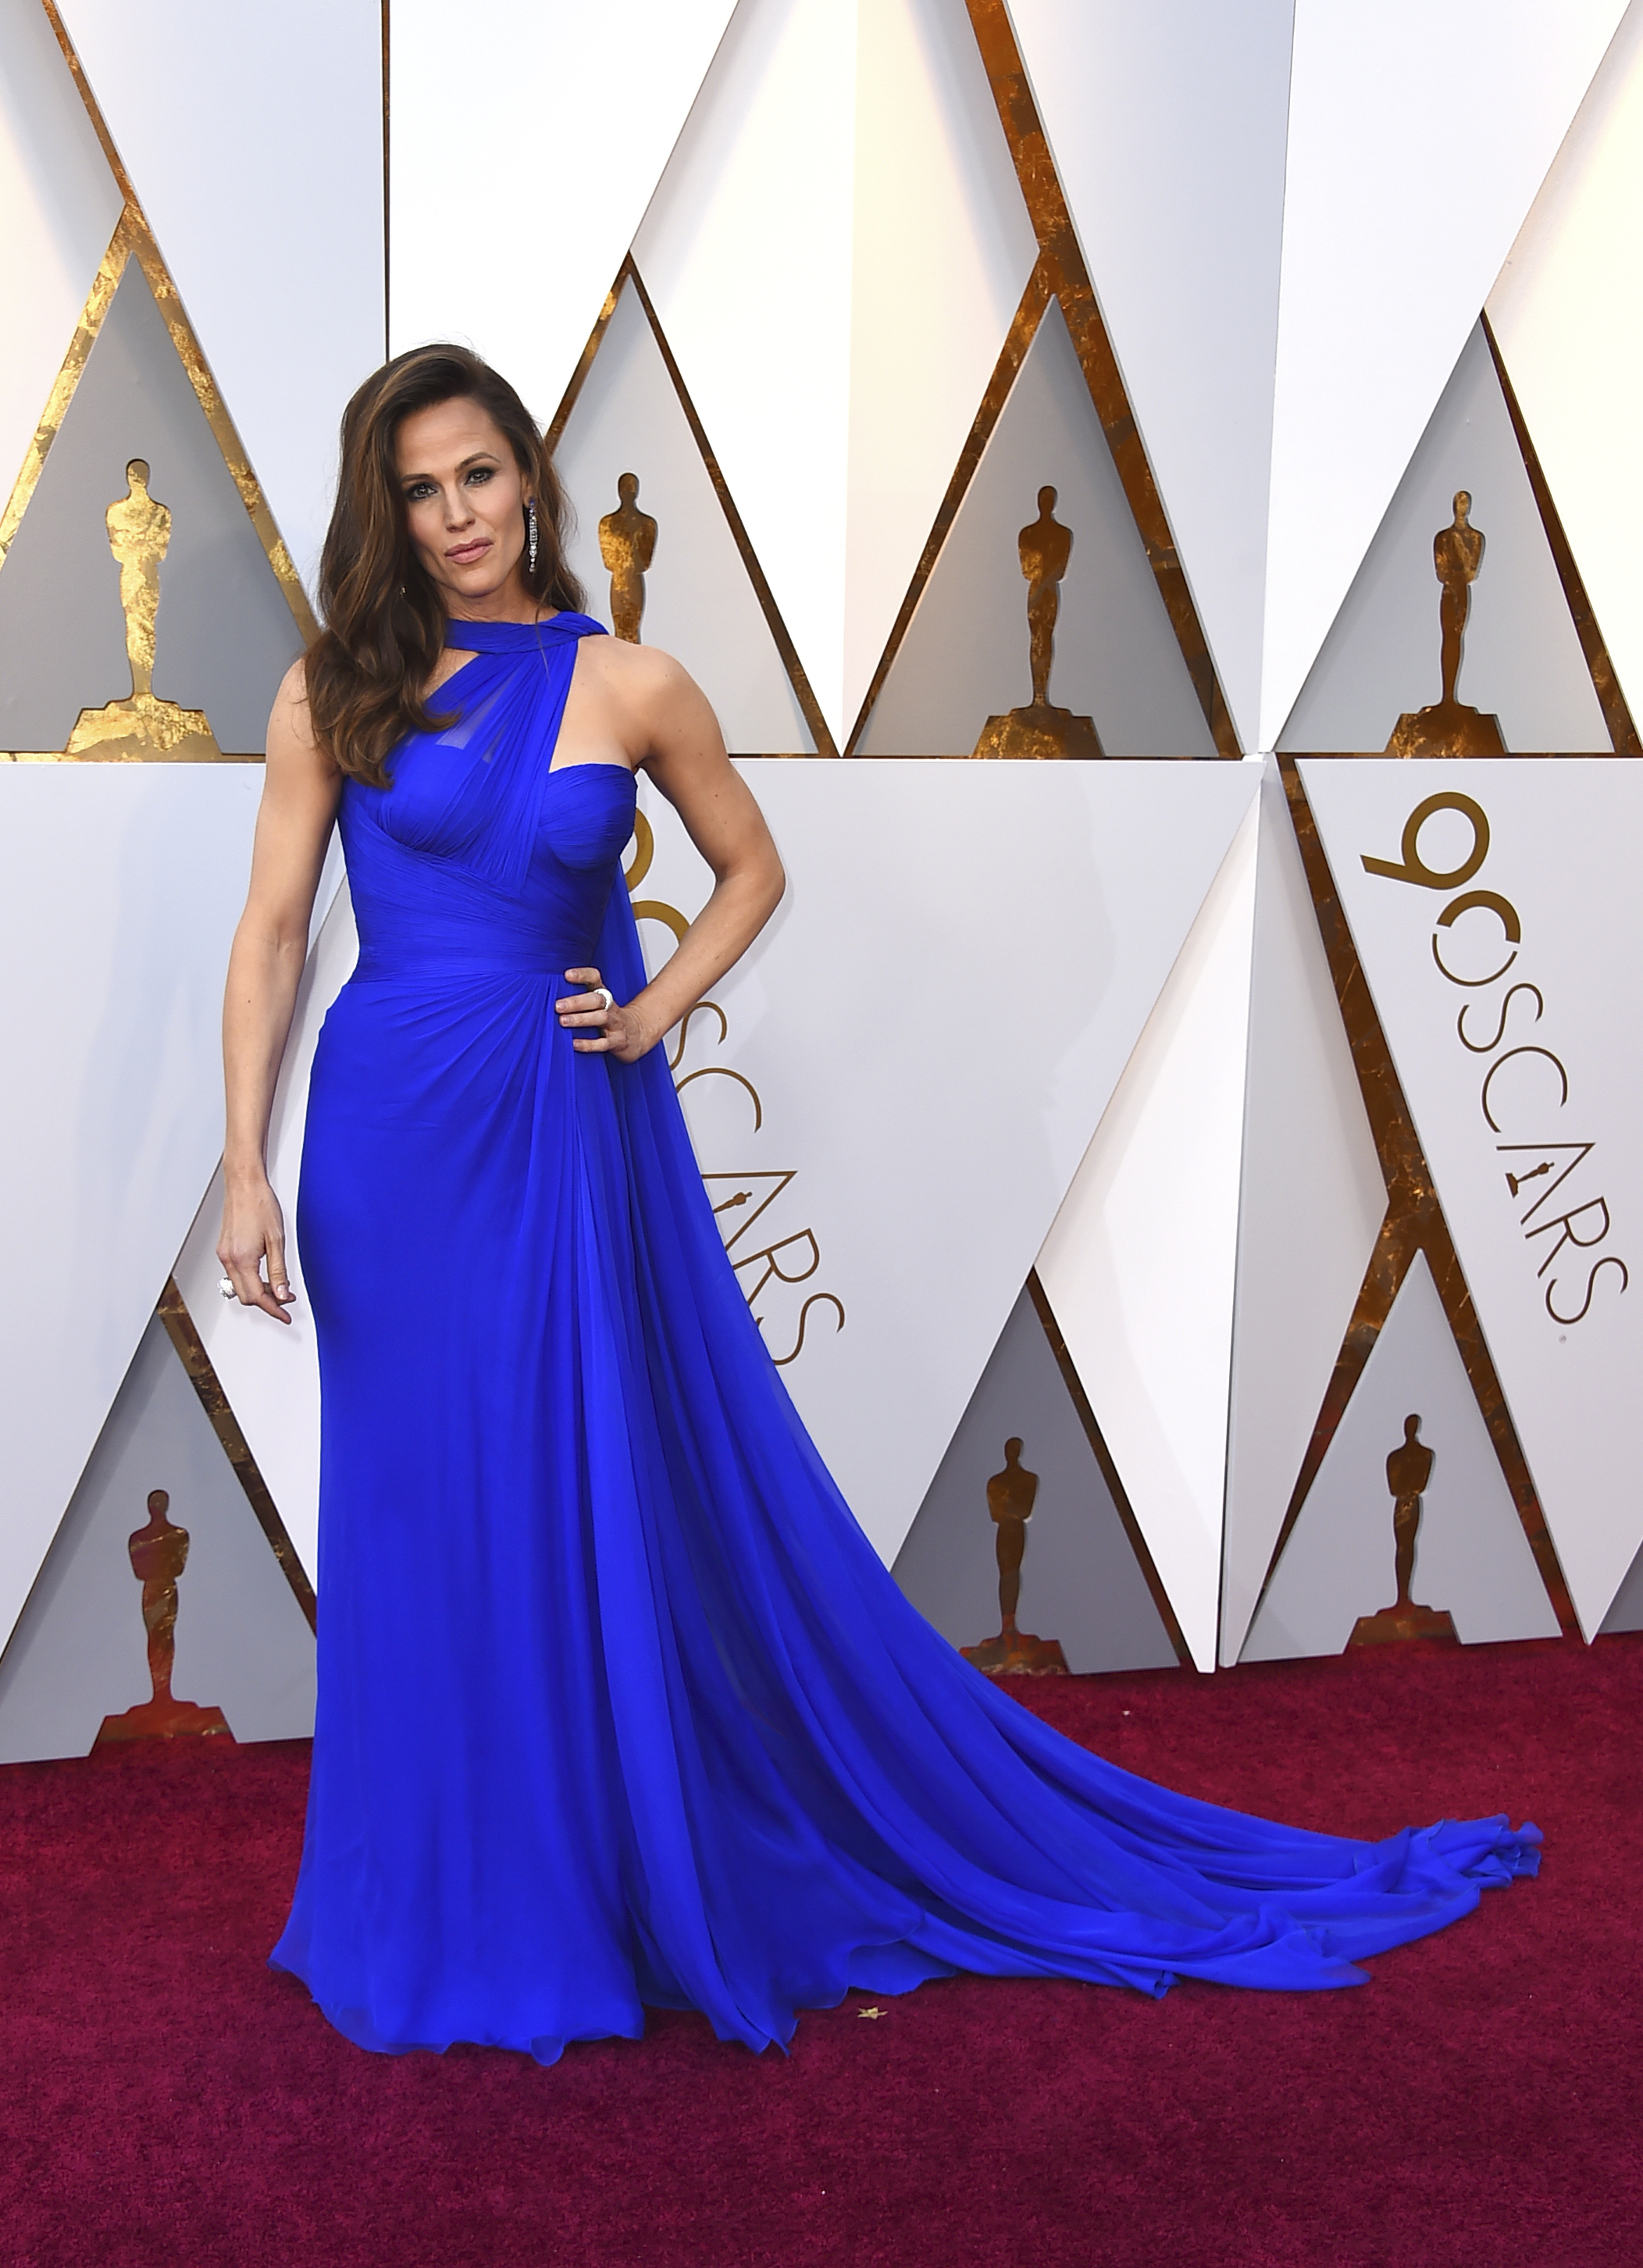 <div class='meta'><div class='origin-logo' data-origin='none'></div><span class='caption-text' data-credit='Jordan Strauss/Invision/AP'>Jennifer Garner arrives at the Oscars on Sunday, March 4, 2018, at the Dolby Theatre in Los Angeles.</span></div>